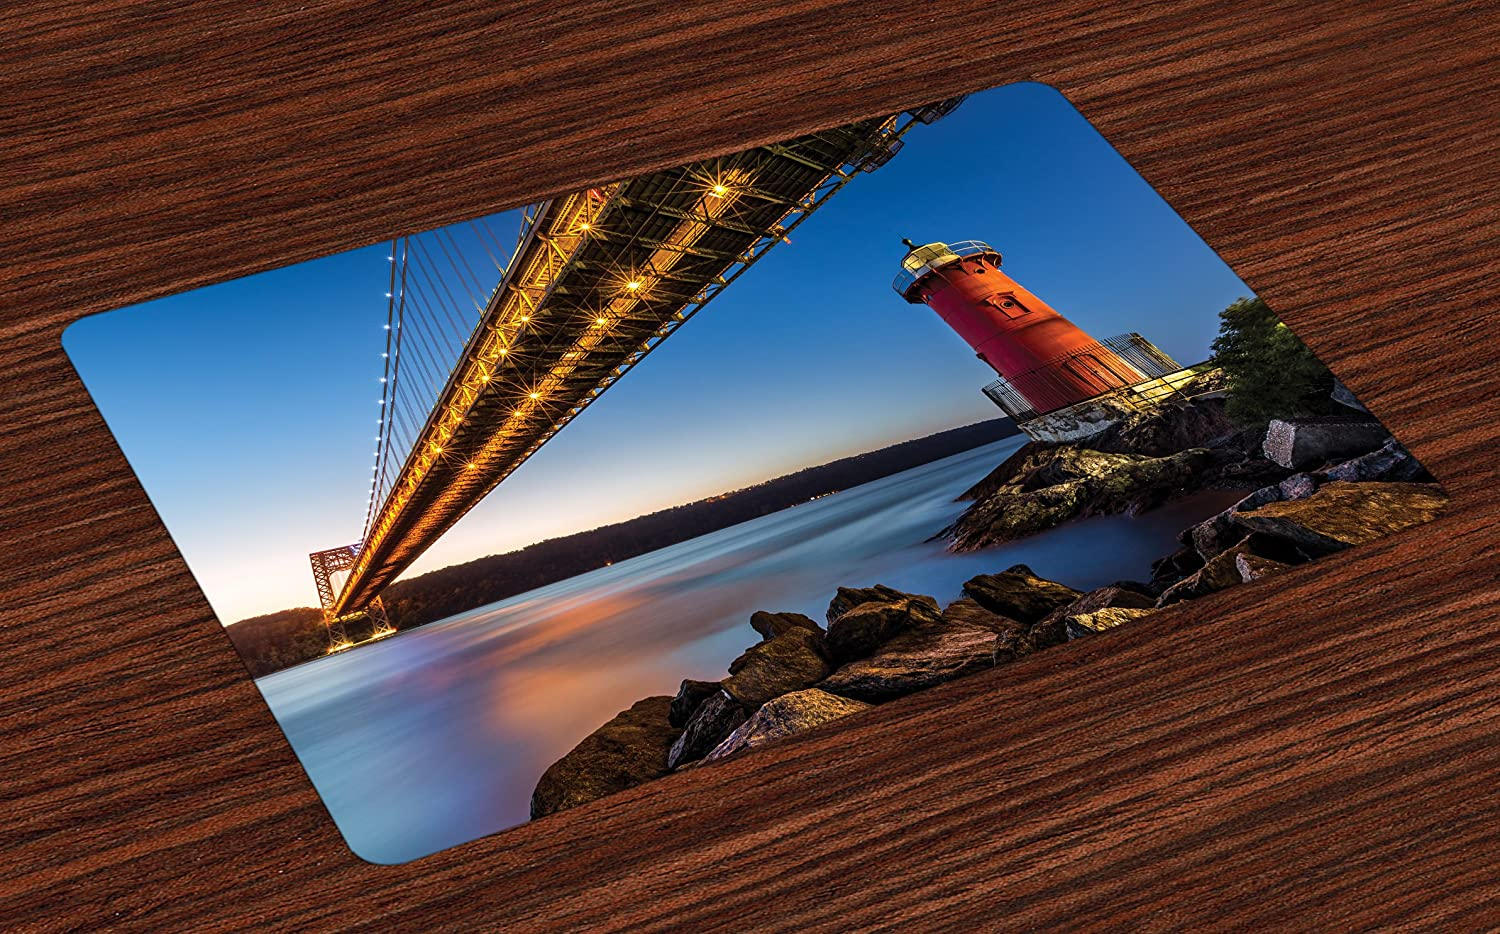 Lunarable United States Place Mats Set of 4, George Washington Bridge Lighthouse on Hudson River New York, Washable Fabric Placemats for Dining Room Kitchen Table Decor, Sky Blue Dark Coral Yellow